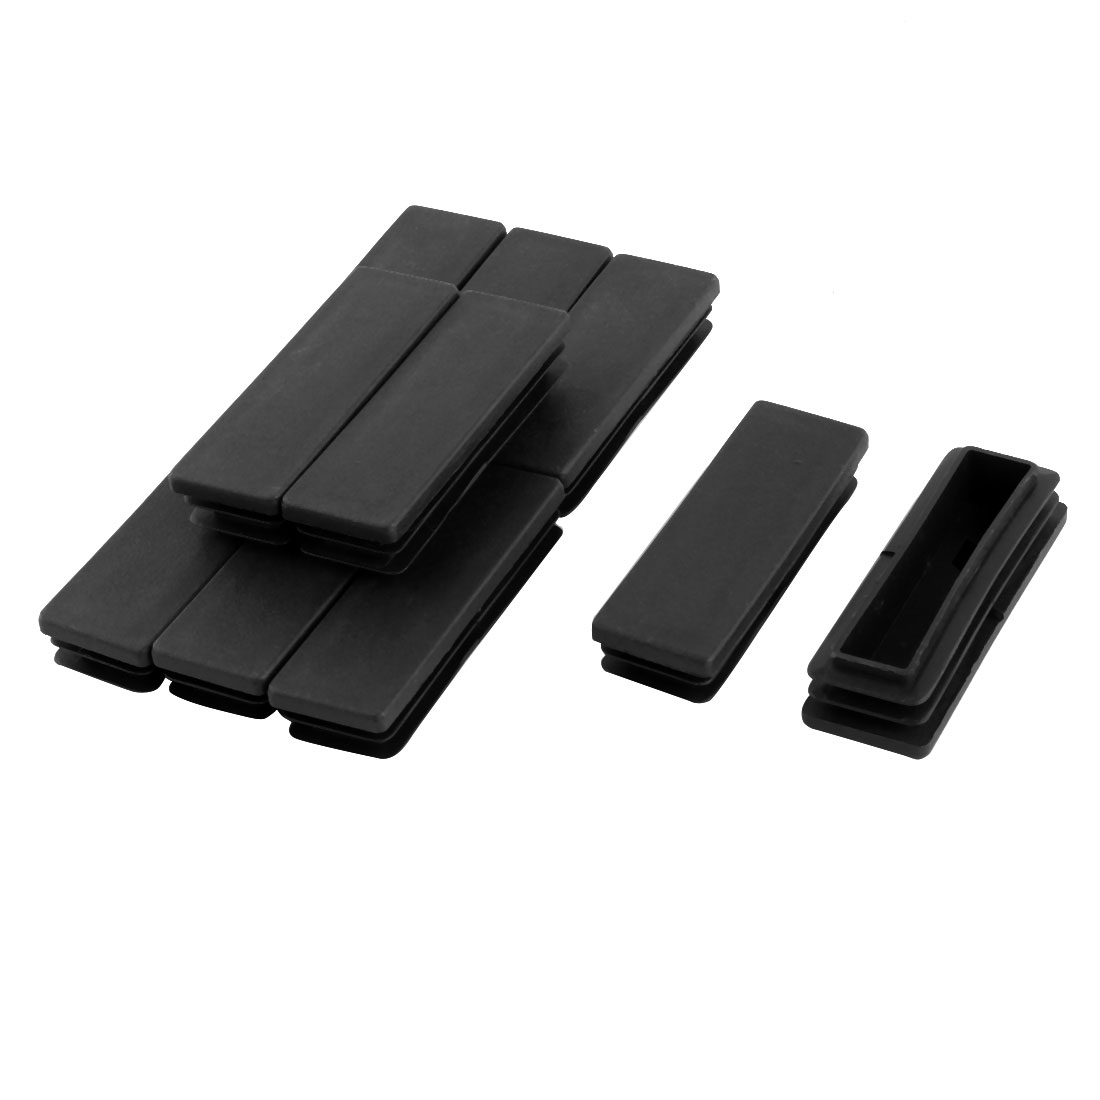 Household Plastic Rectangular Shaped Table Chair Leg Tube Pipe Insert Black 75 x 25mm 10 PCS